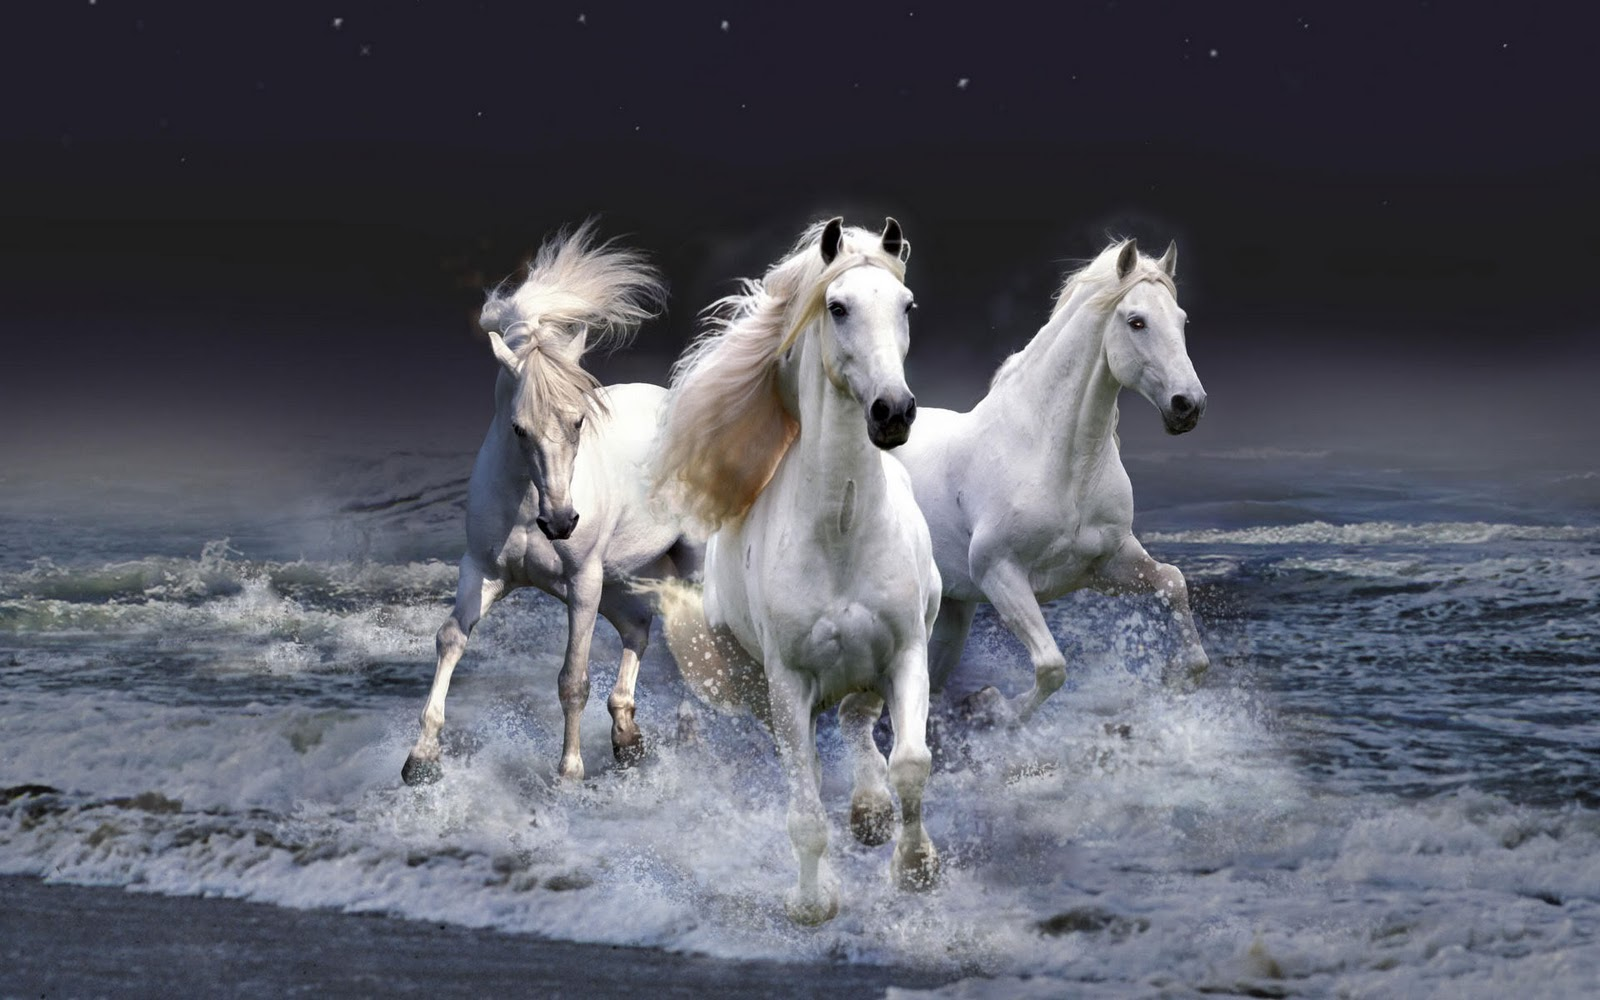 Fantastic Wallpaper Horse Rose - the-best-top-desktop-horse-wallpapers-15  You Should Have_59516.jpg